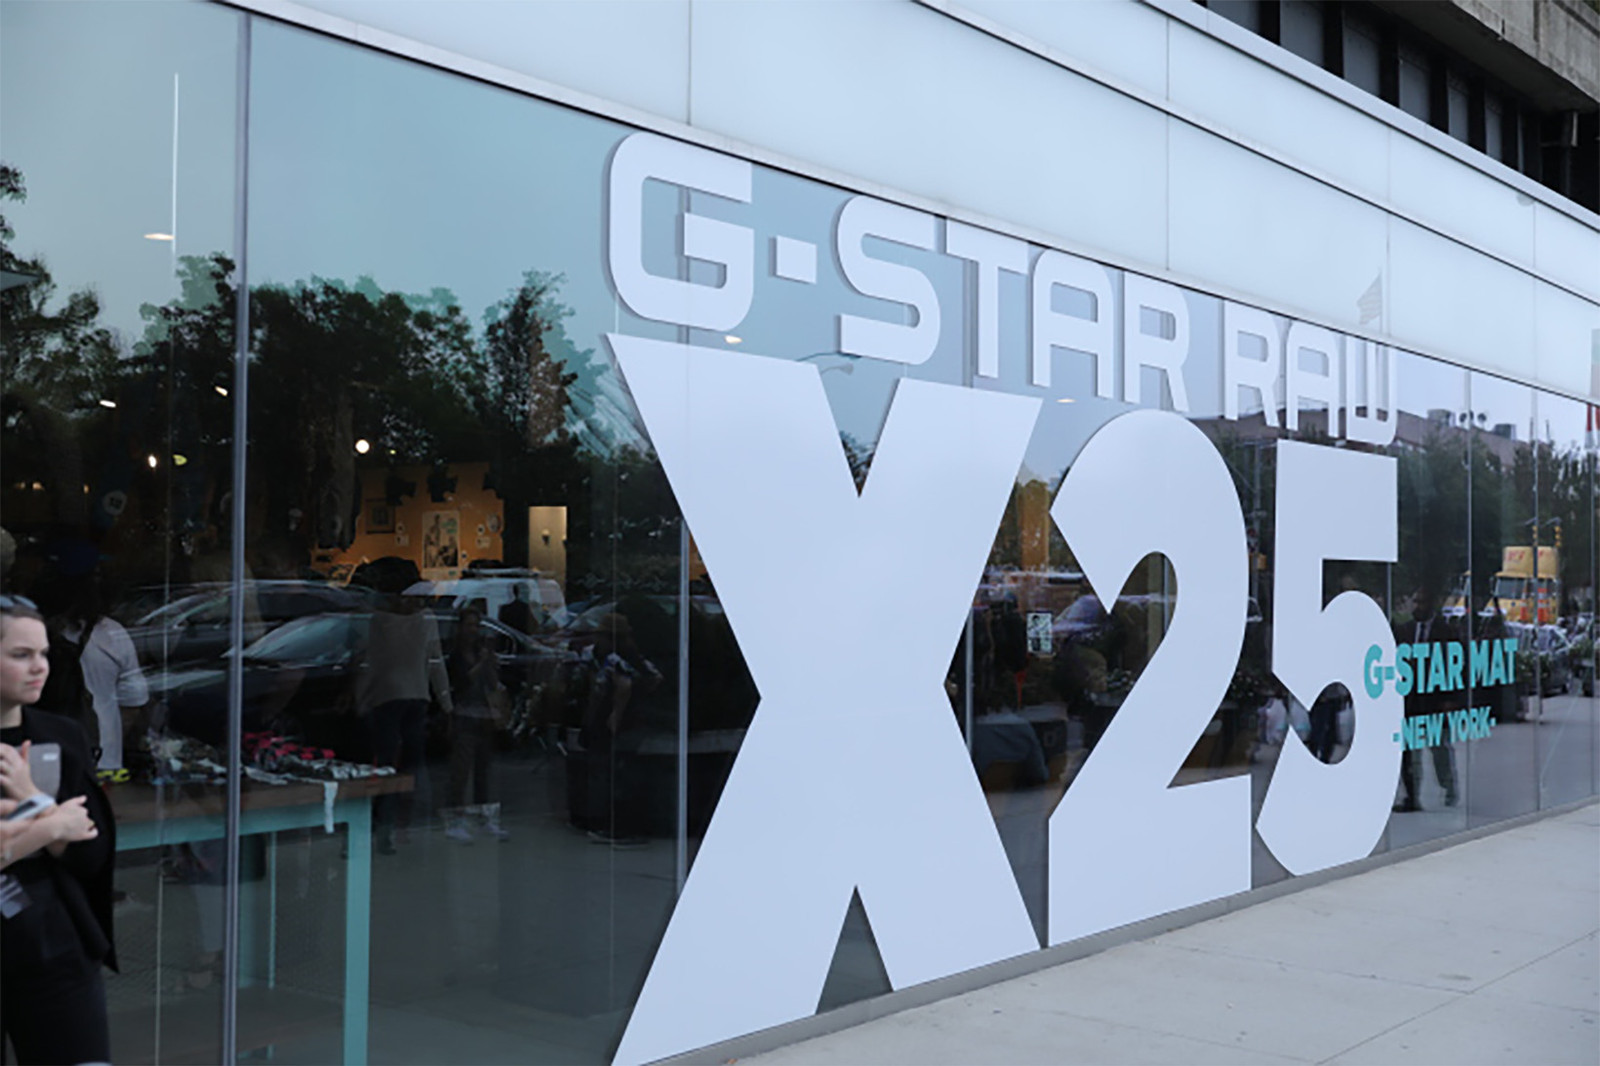 A Look Inside the G-Star Mat Event with Pharell Williams